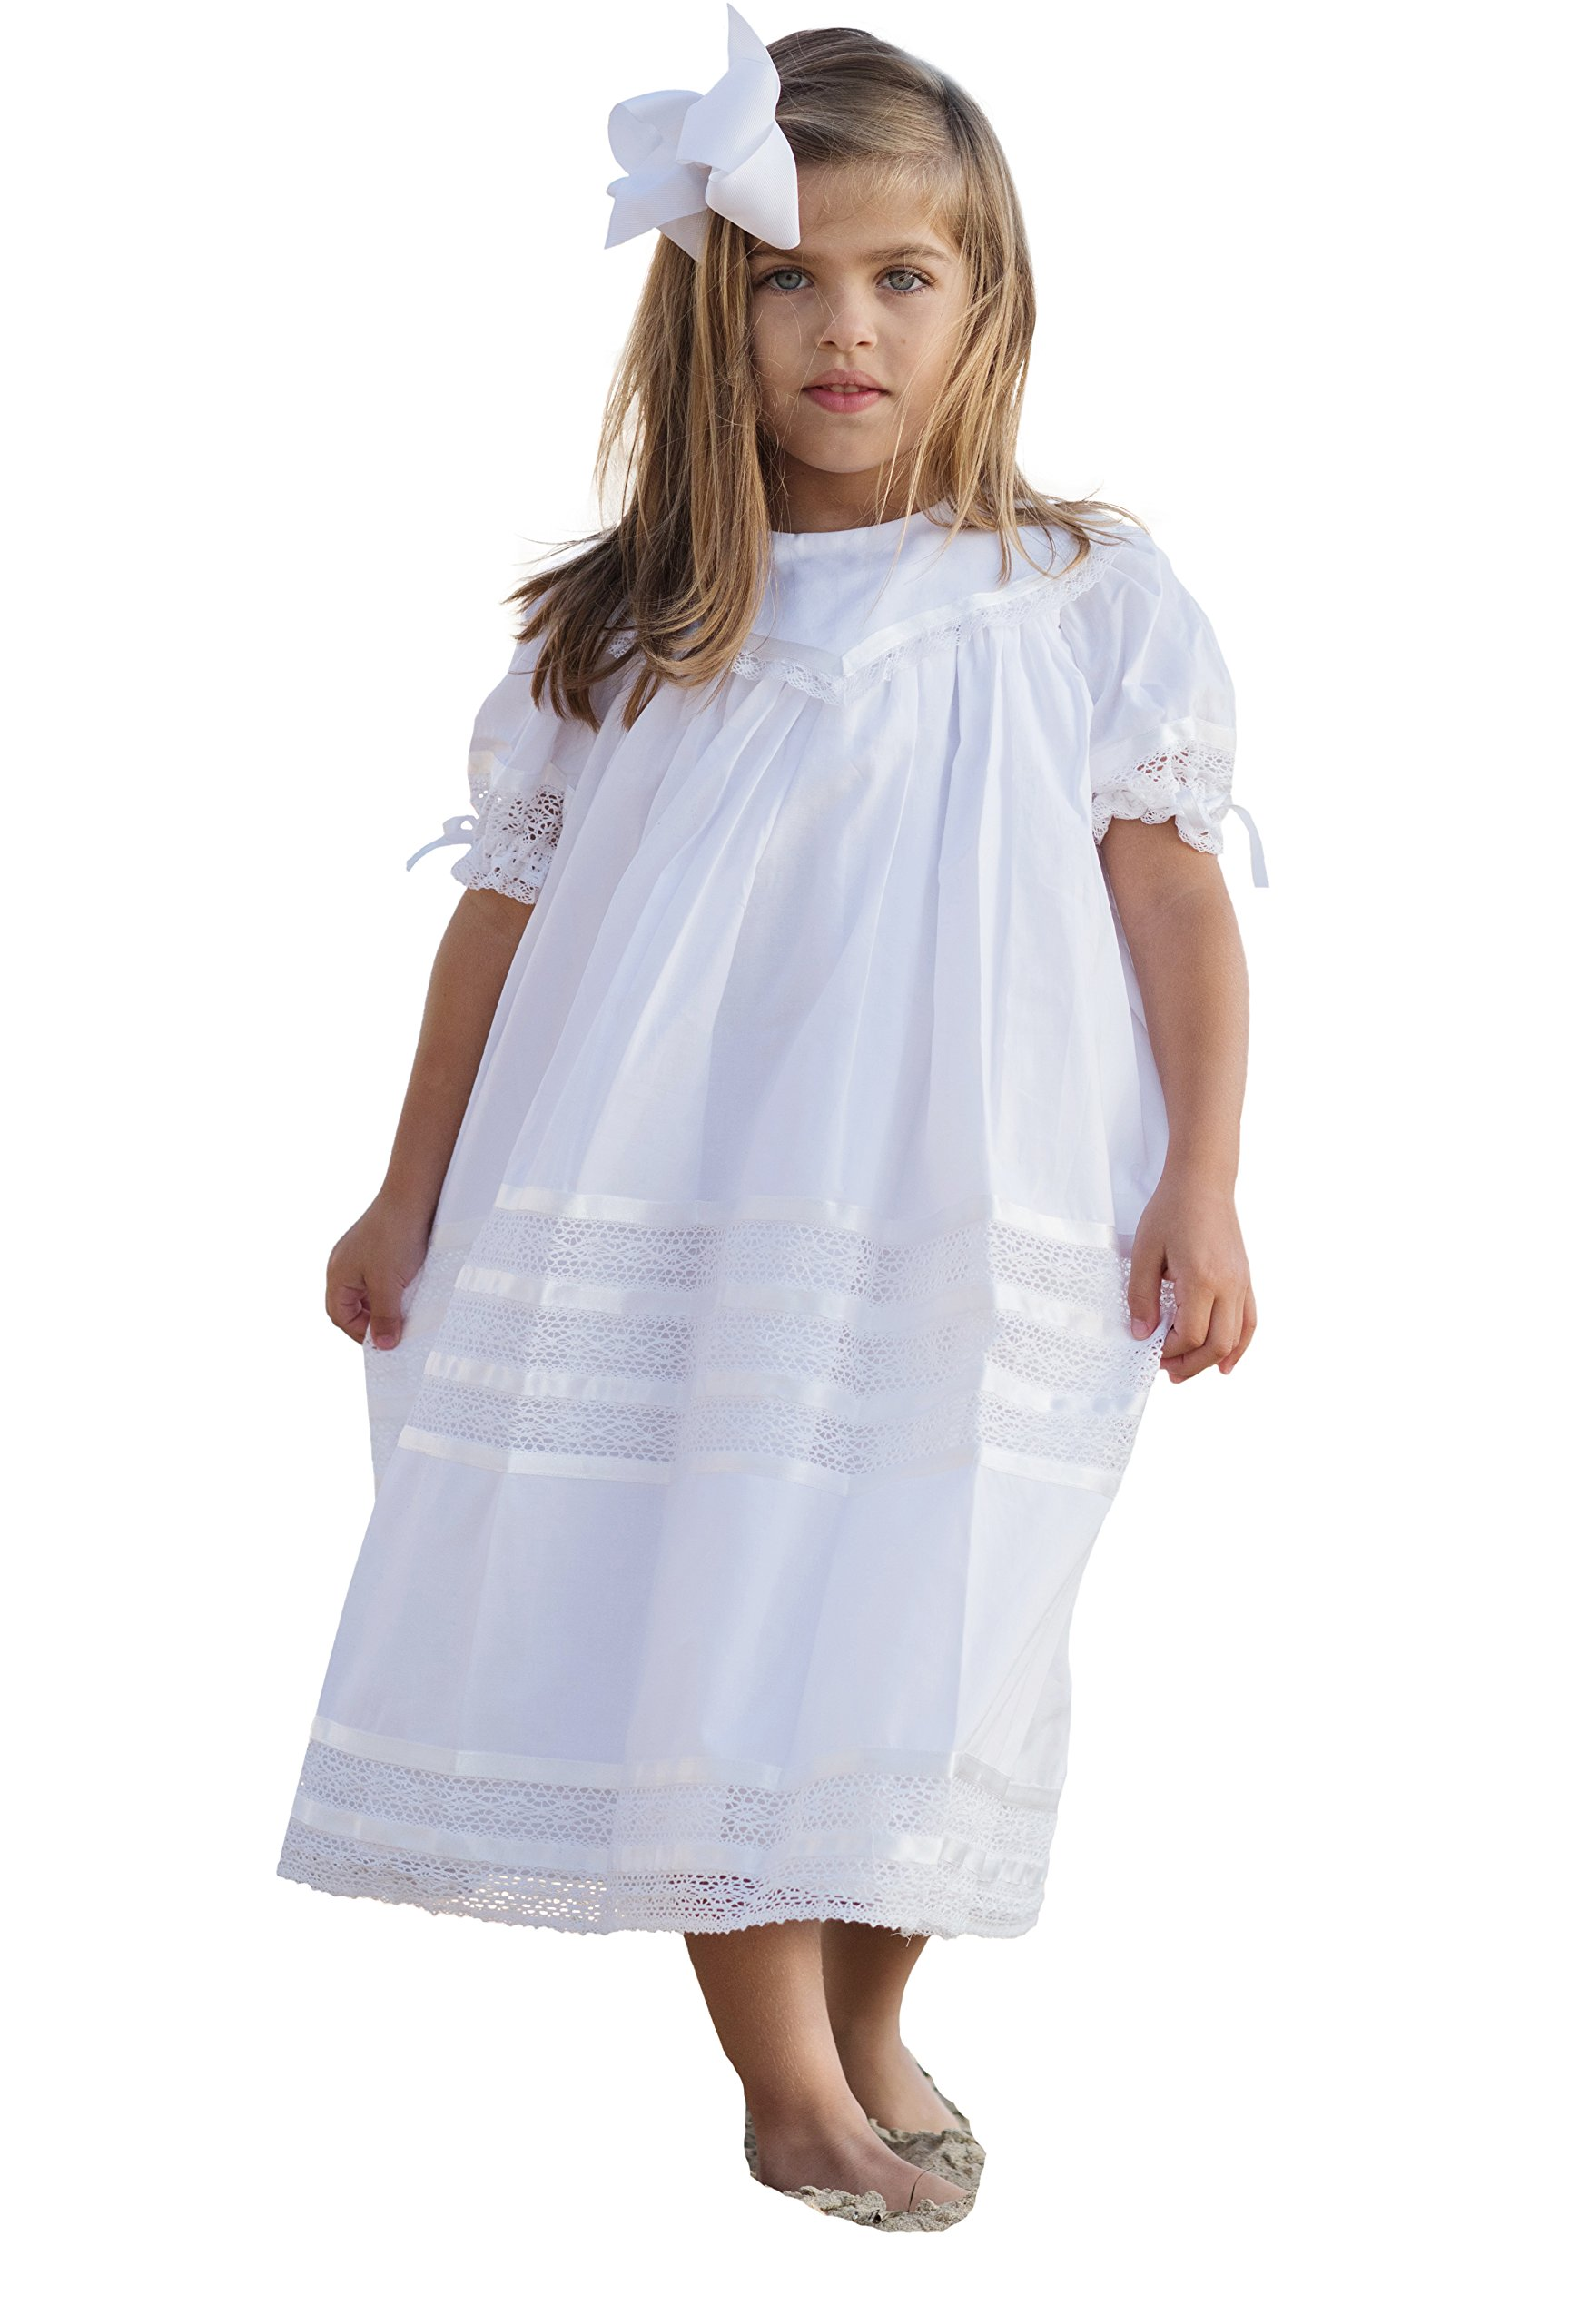 Strasburg Children Girls Lace Flower Girl Dress Vintage Heirloom Portrait Baptism Dresses (10, White)